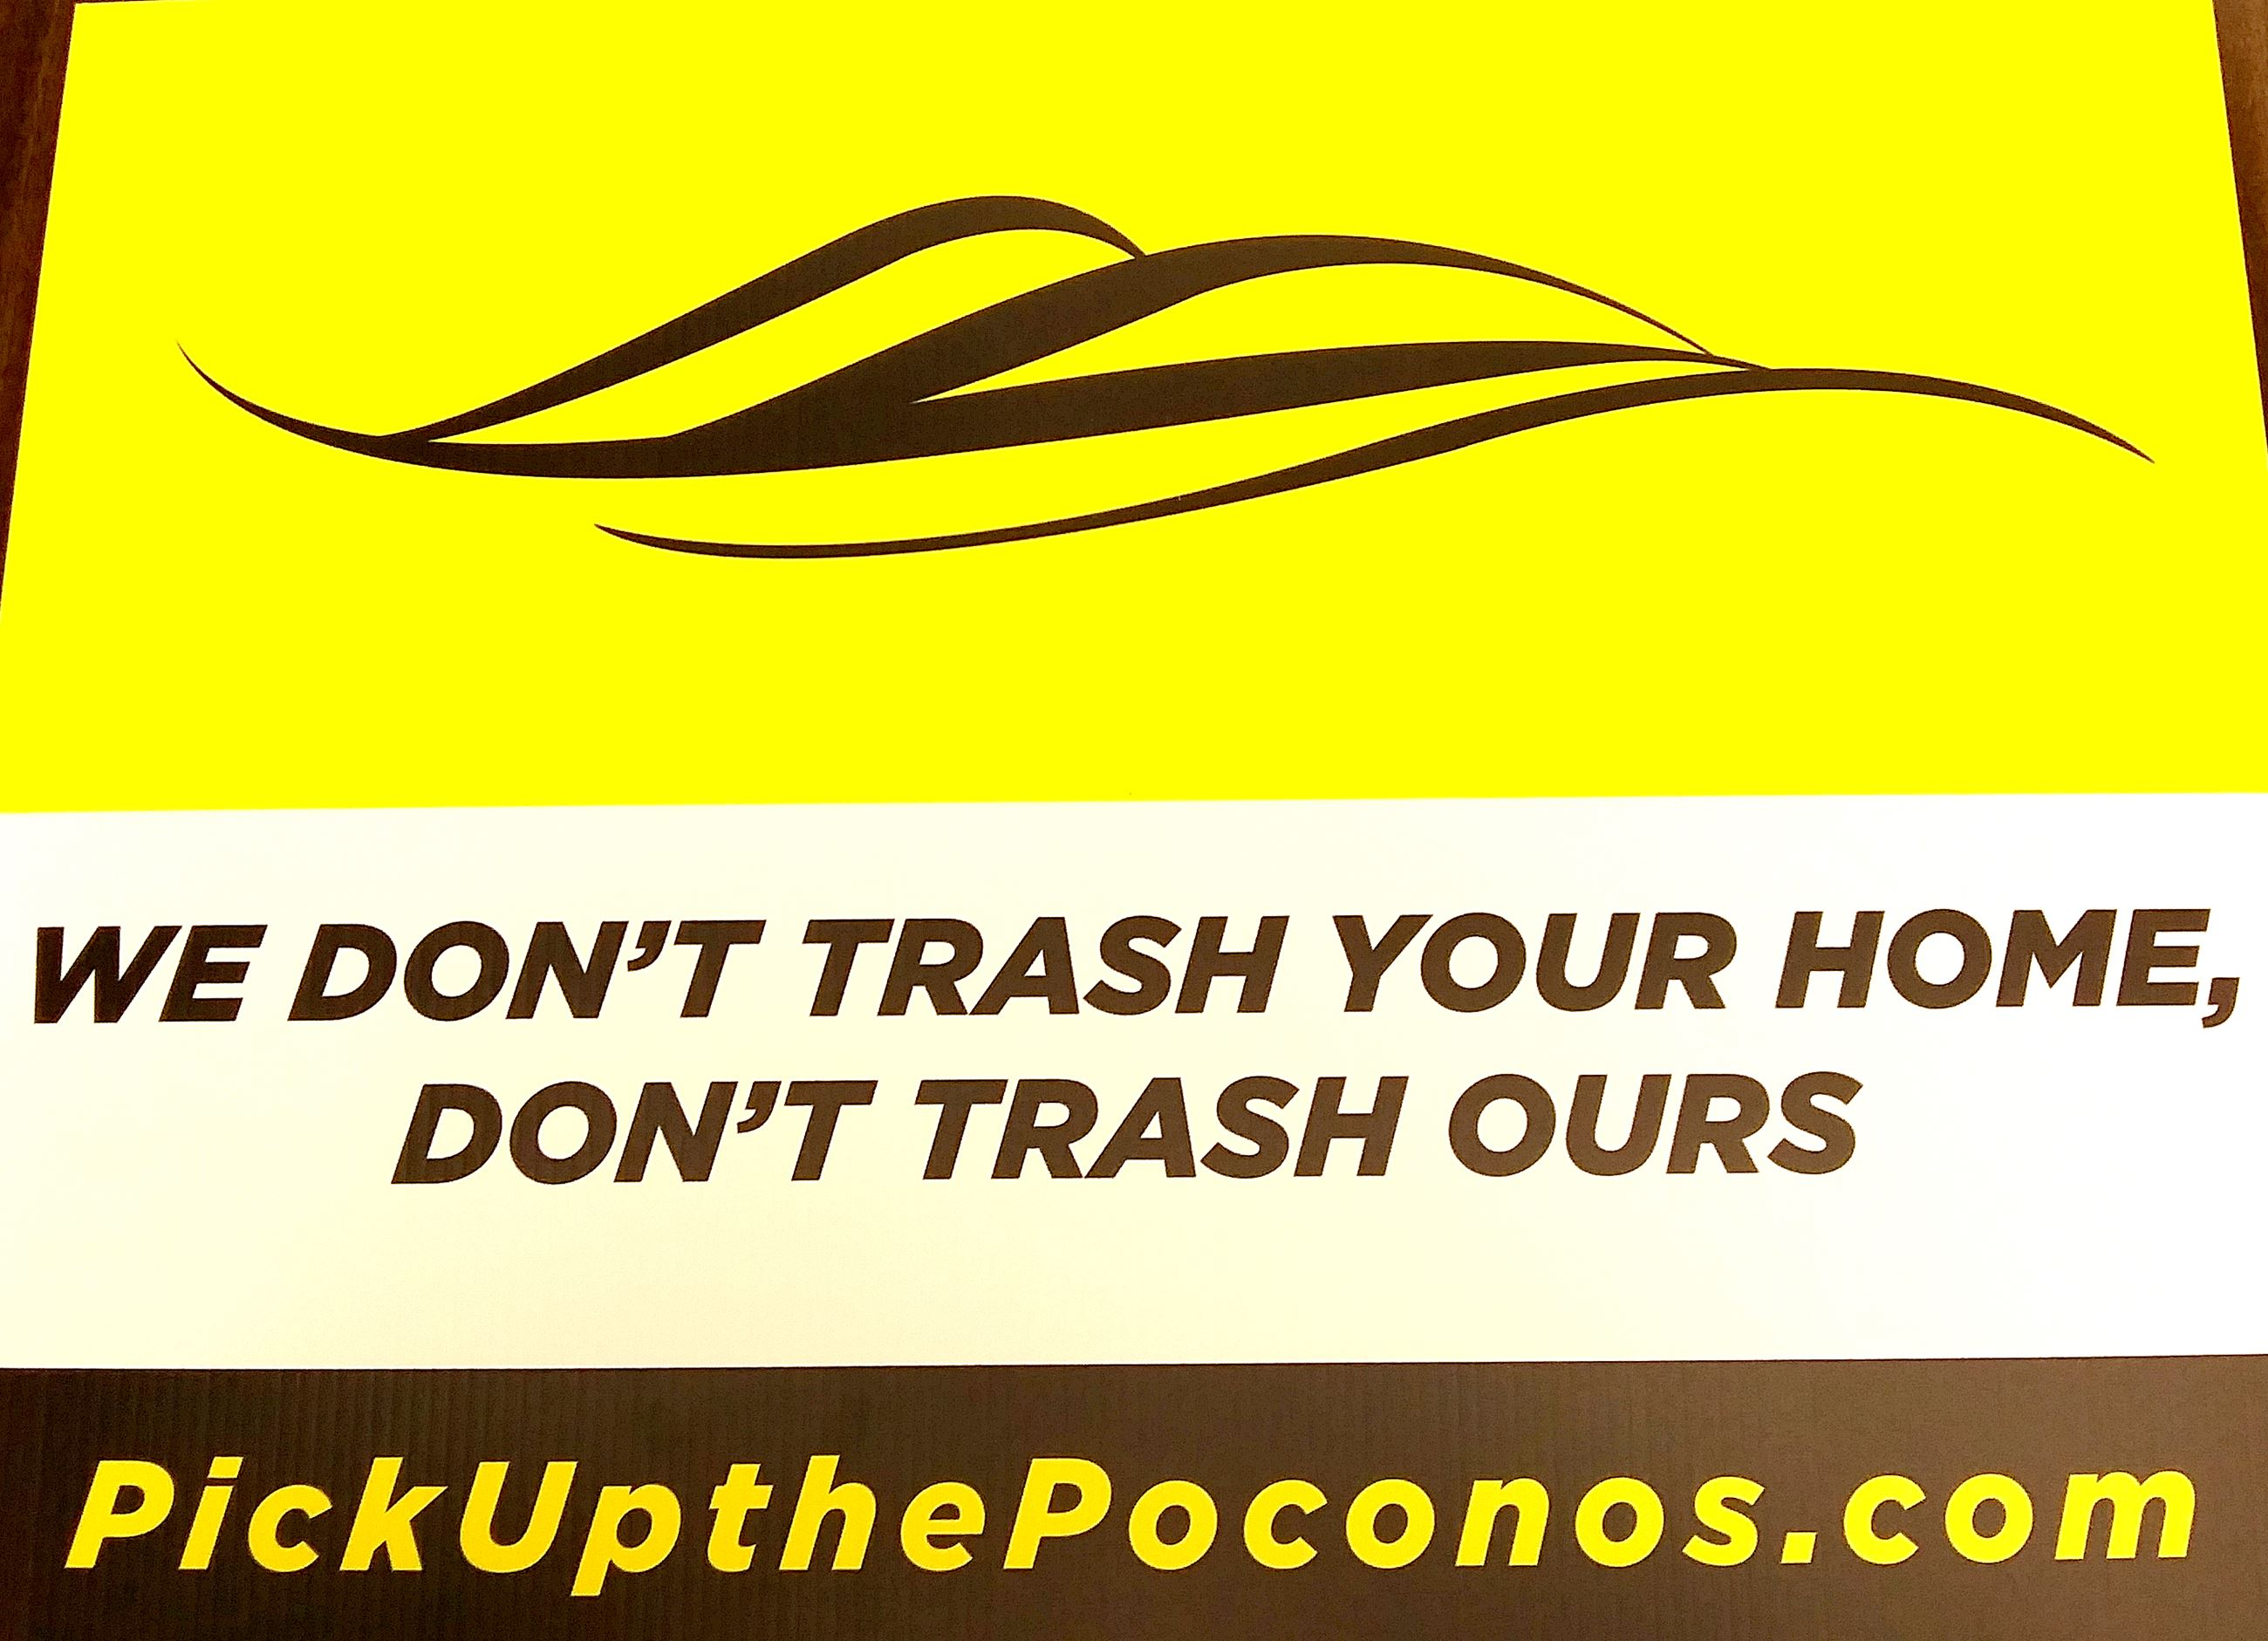 A yard sign with the Pocono Mountains Vacation Bureau swoop logo advising people &#34We don&#39t tra